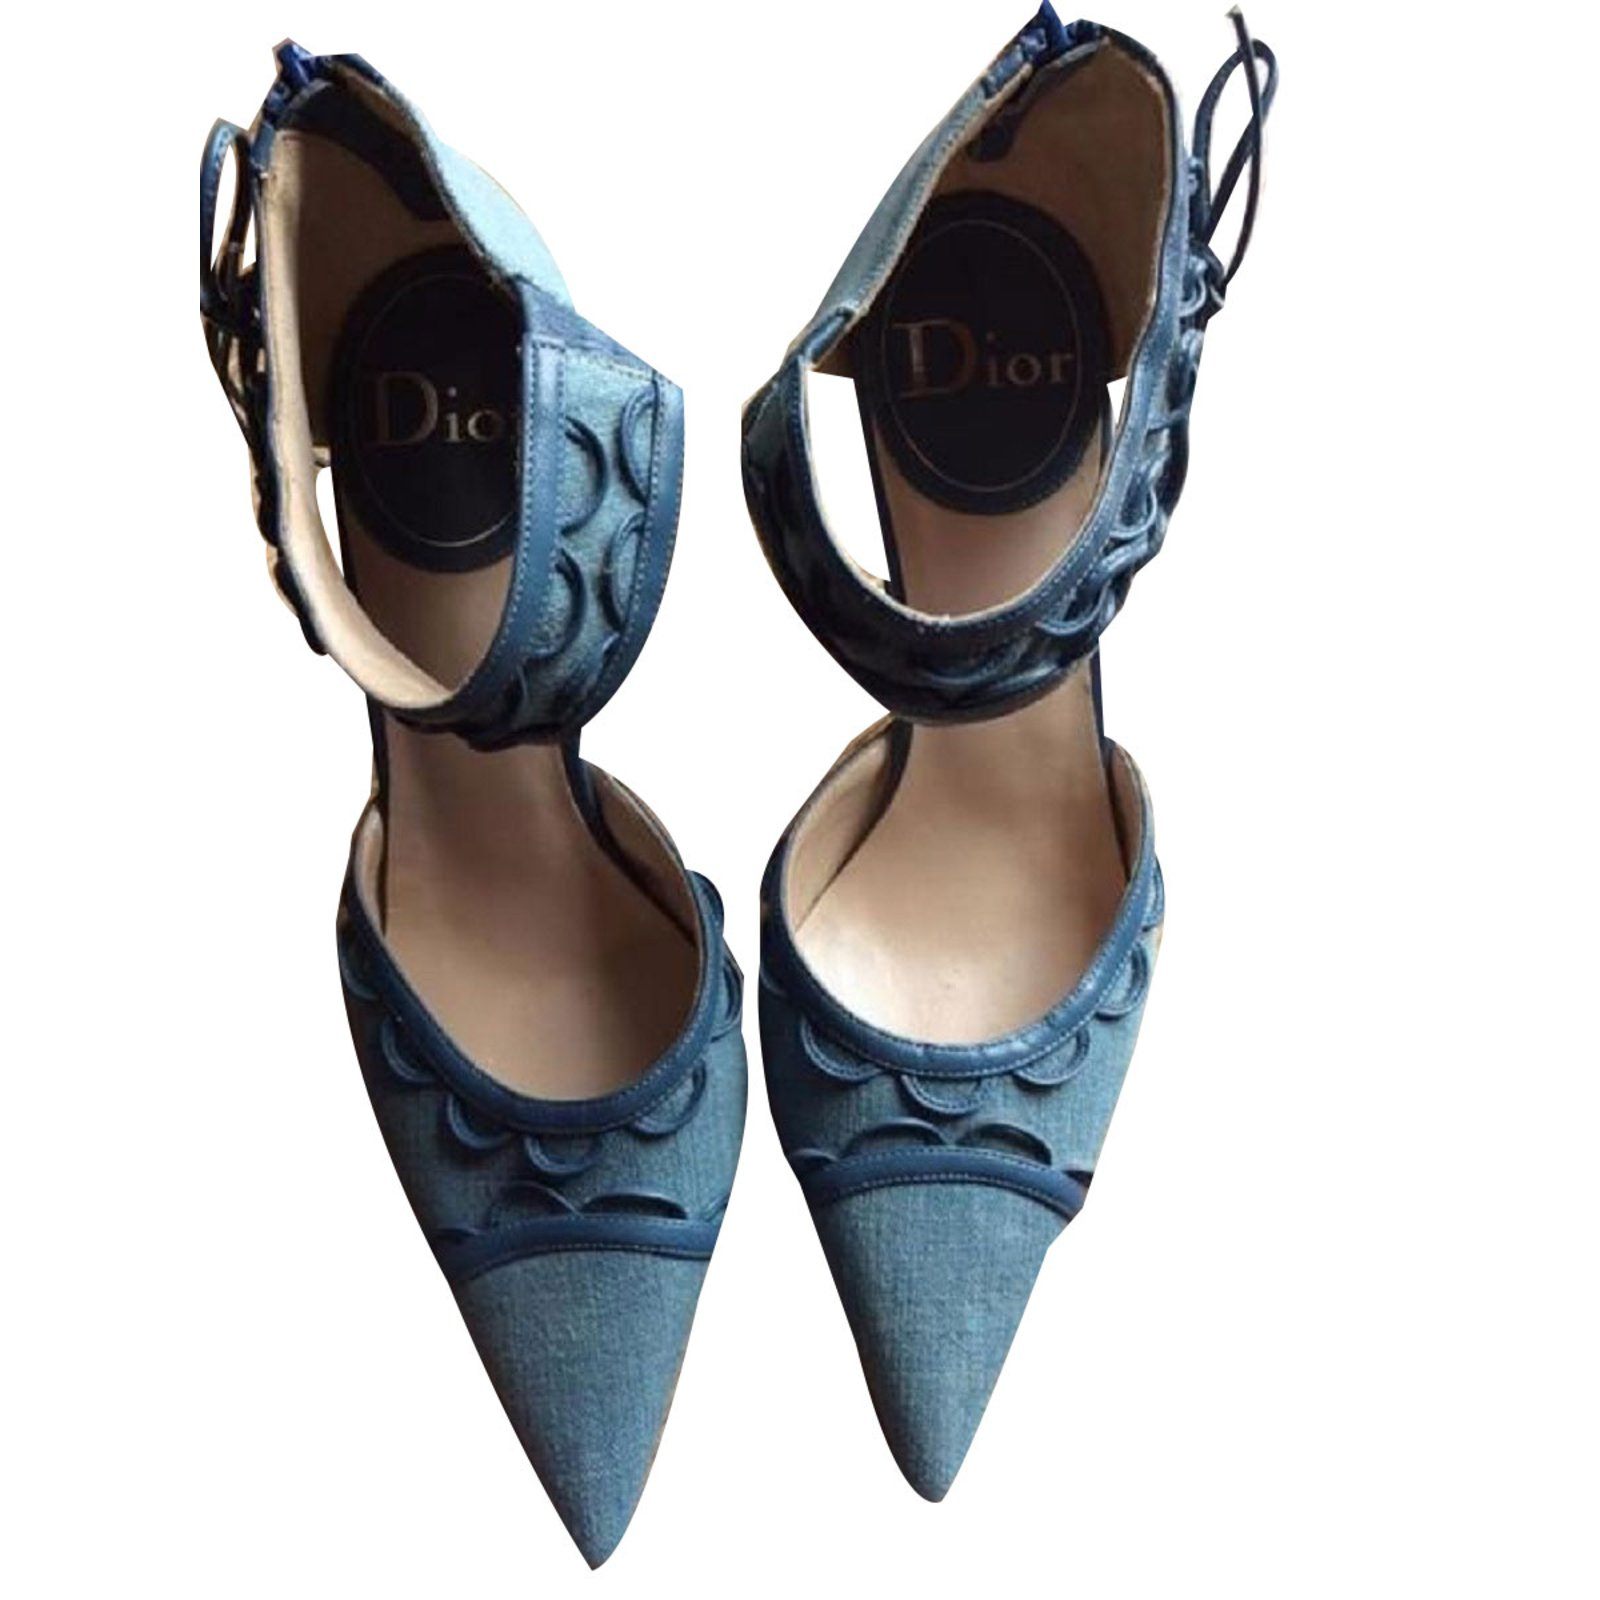 8a989beec2f Christian Dior Pumps Heels Denim Blue ref.73022 - Joli Closet